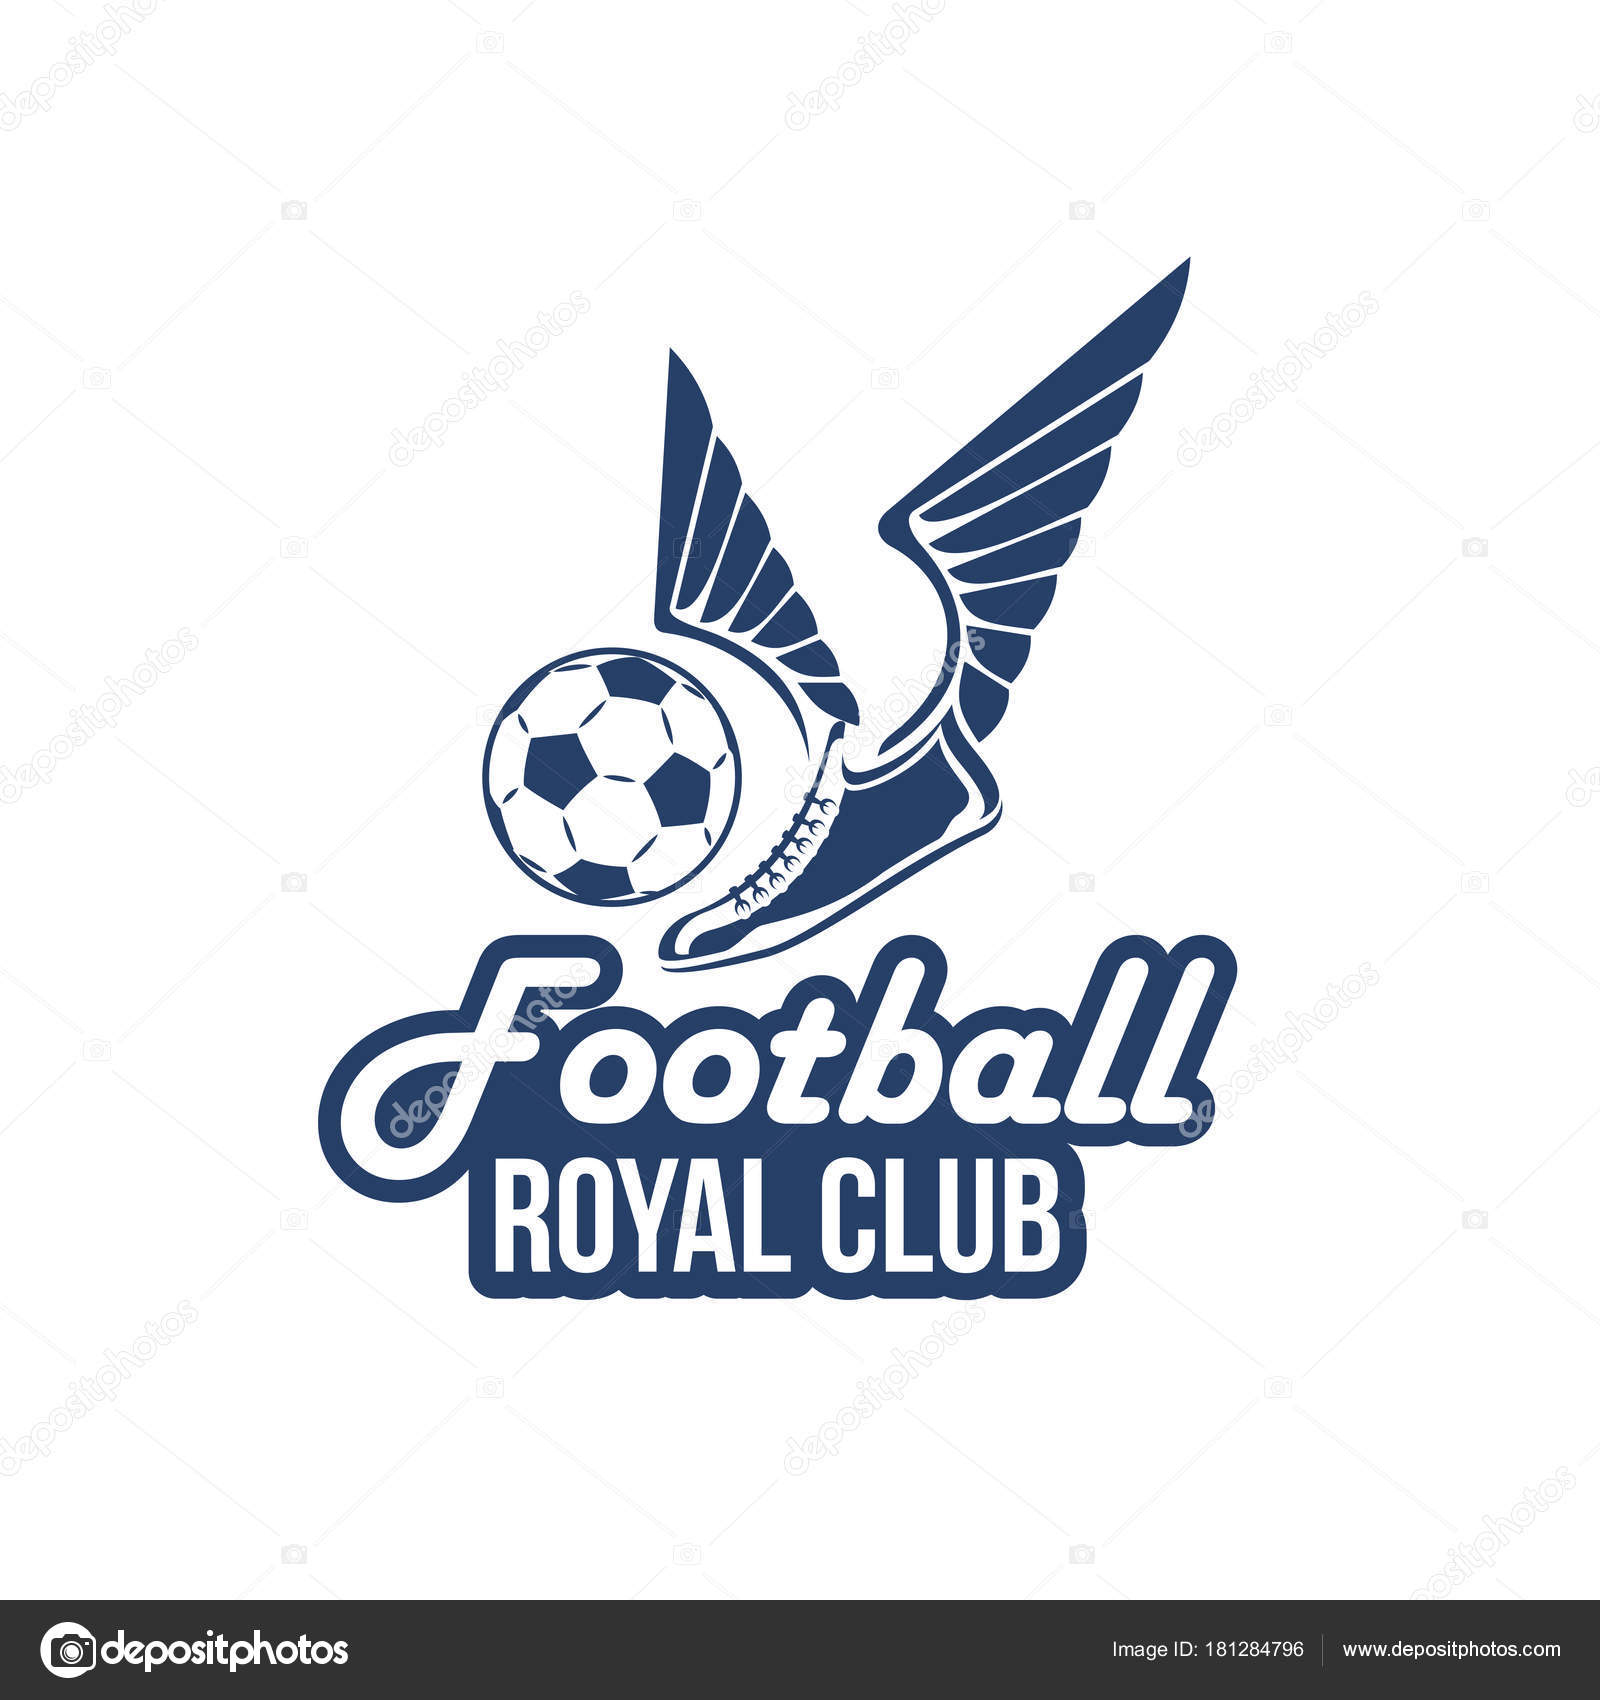 Vector football club icon of soccer ball wings stock vector football royal club icon or badge design template of soccer ball and shoe or player boot with victory wings vector isolated symbol for football college buycottarizona